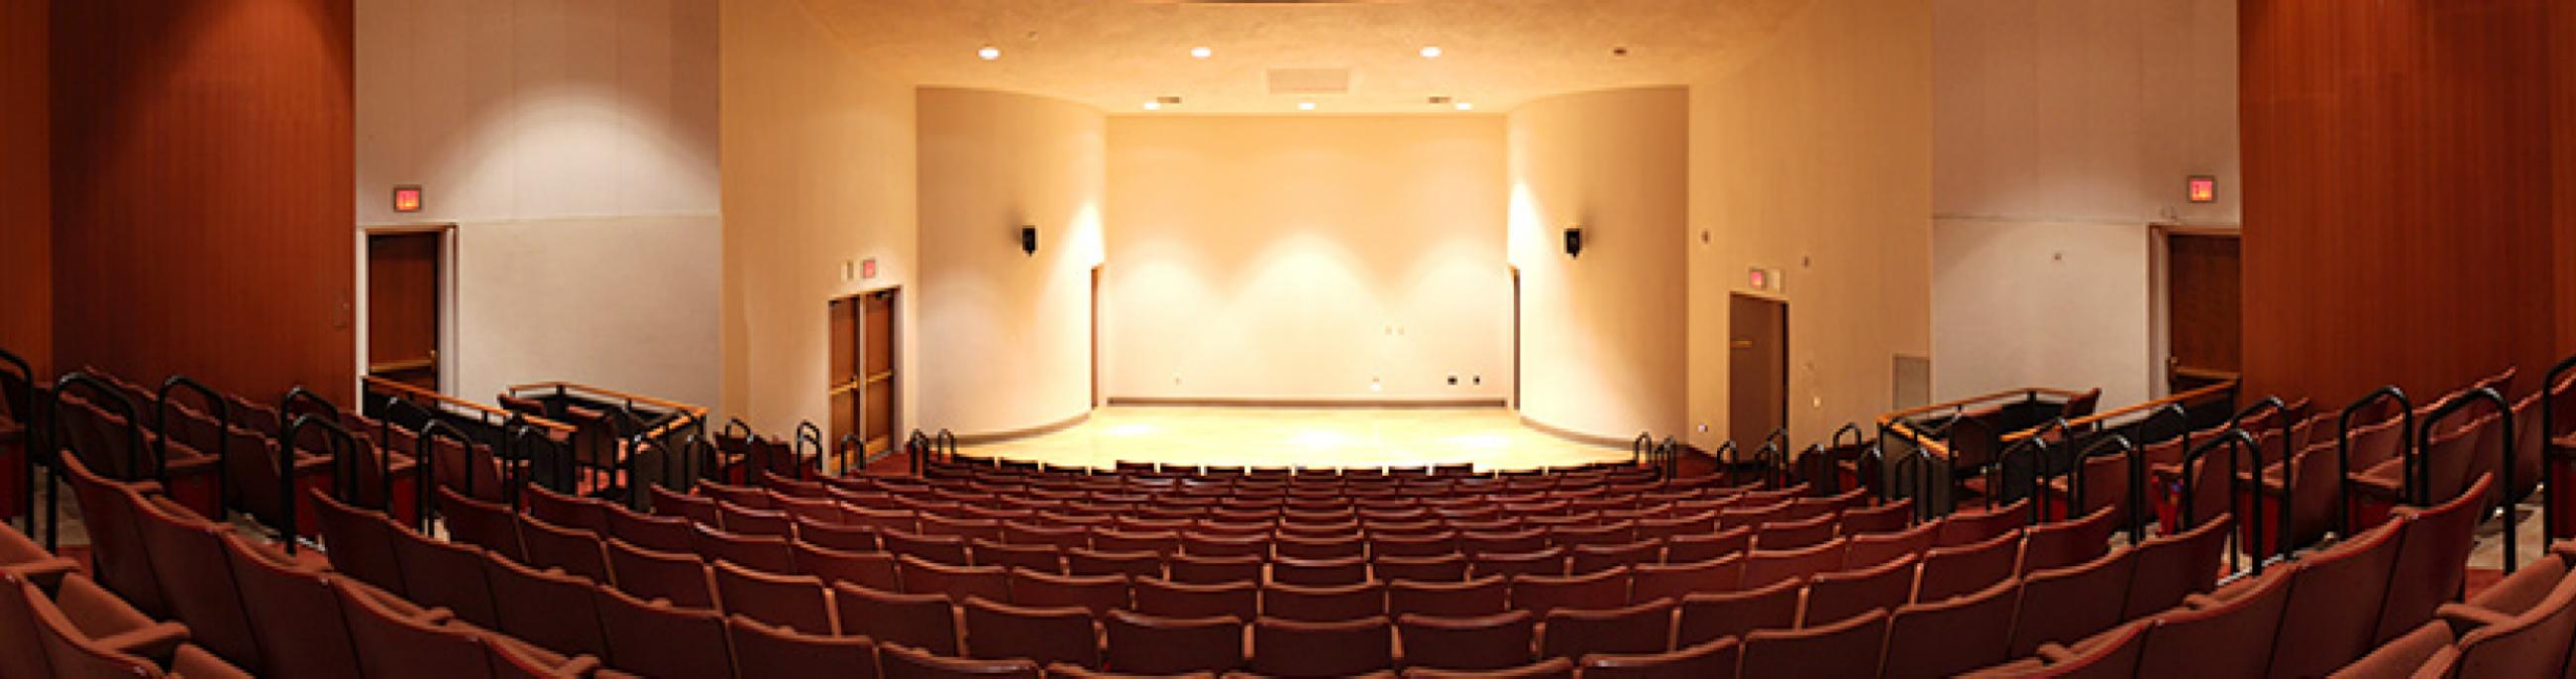 CCA's Recital Hall stage provides optimal listening and viewing for smaller recitals, lectures